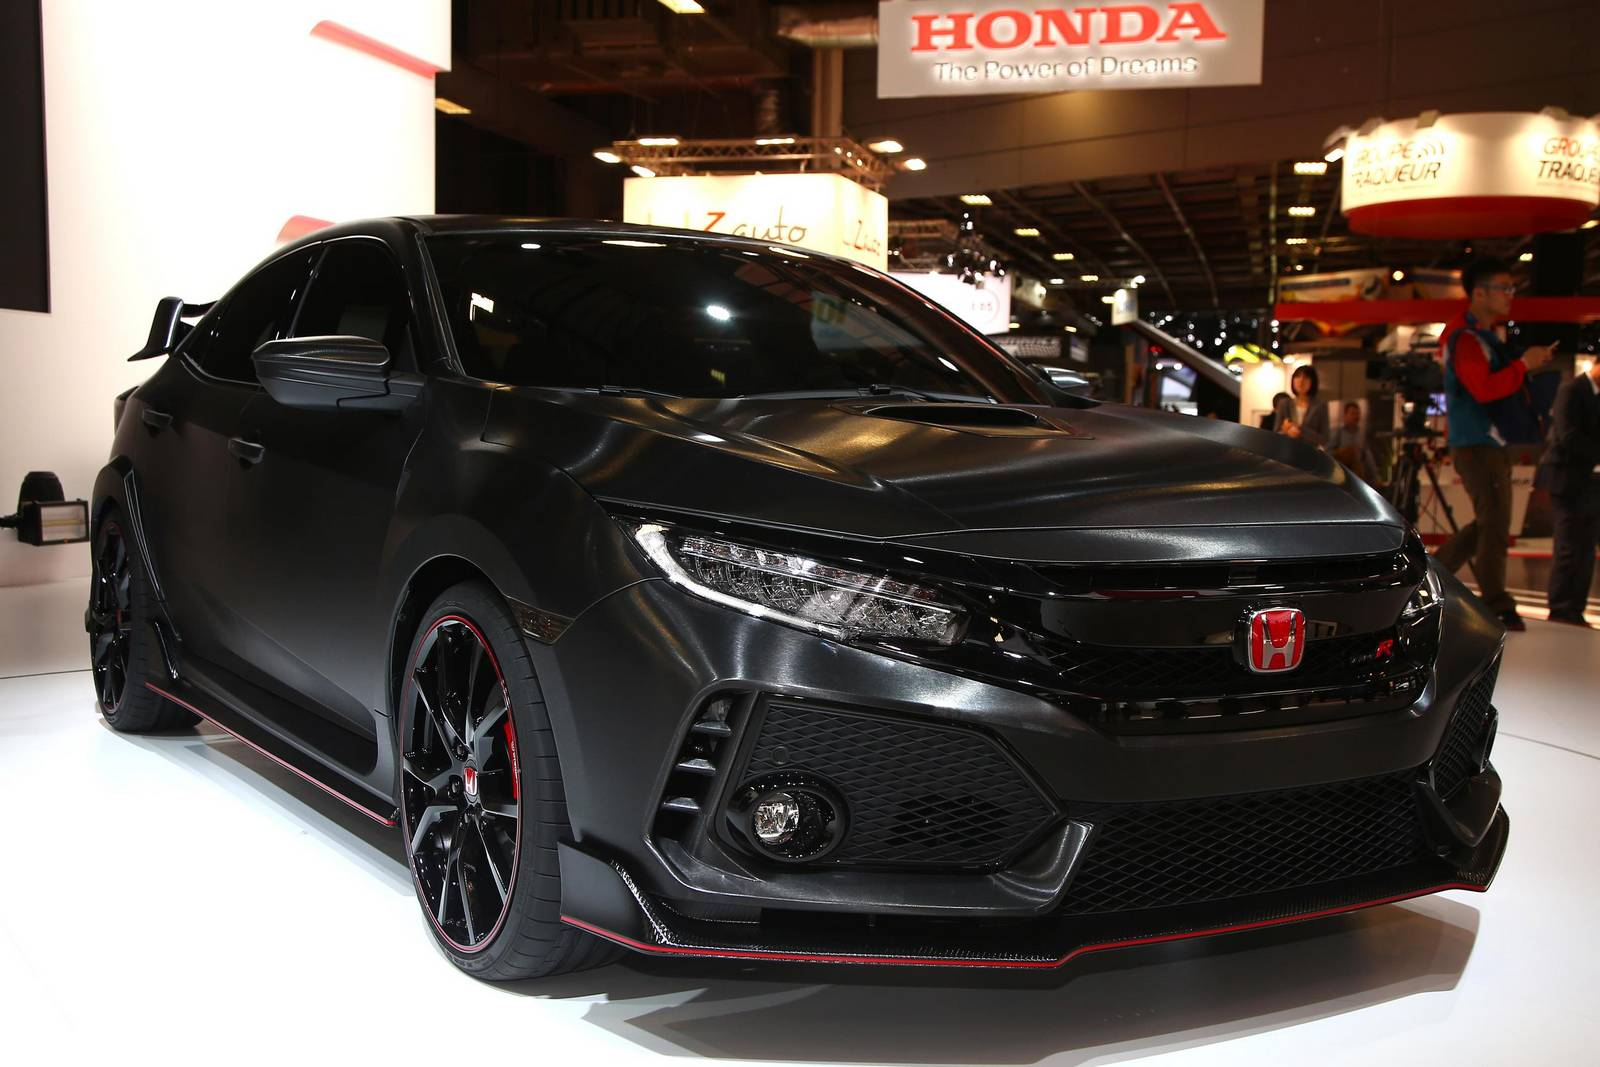 paris 2016 honda civic type r prototype 5th generation. Black Bedroom Furniture Sets. Home Design Ideas